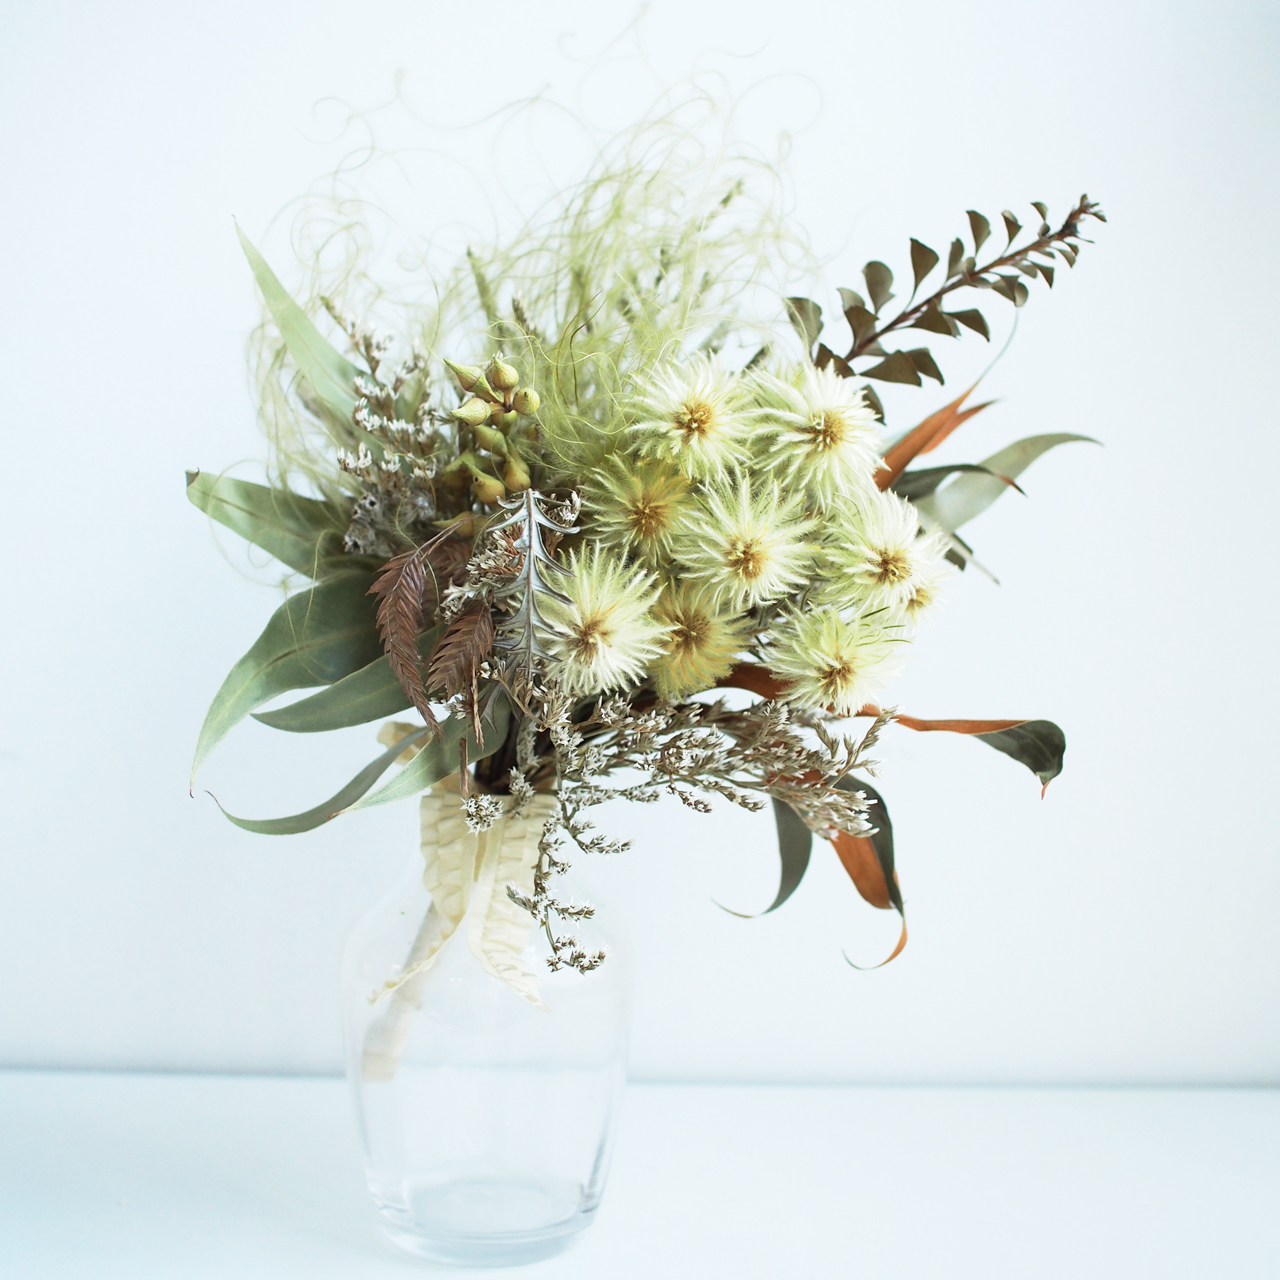 mayu32fd 高橋 繭「飾る dried flower bouquet  」